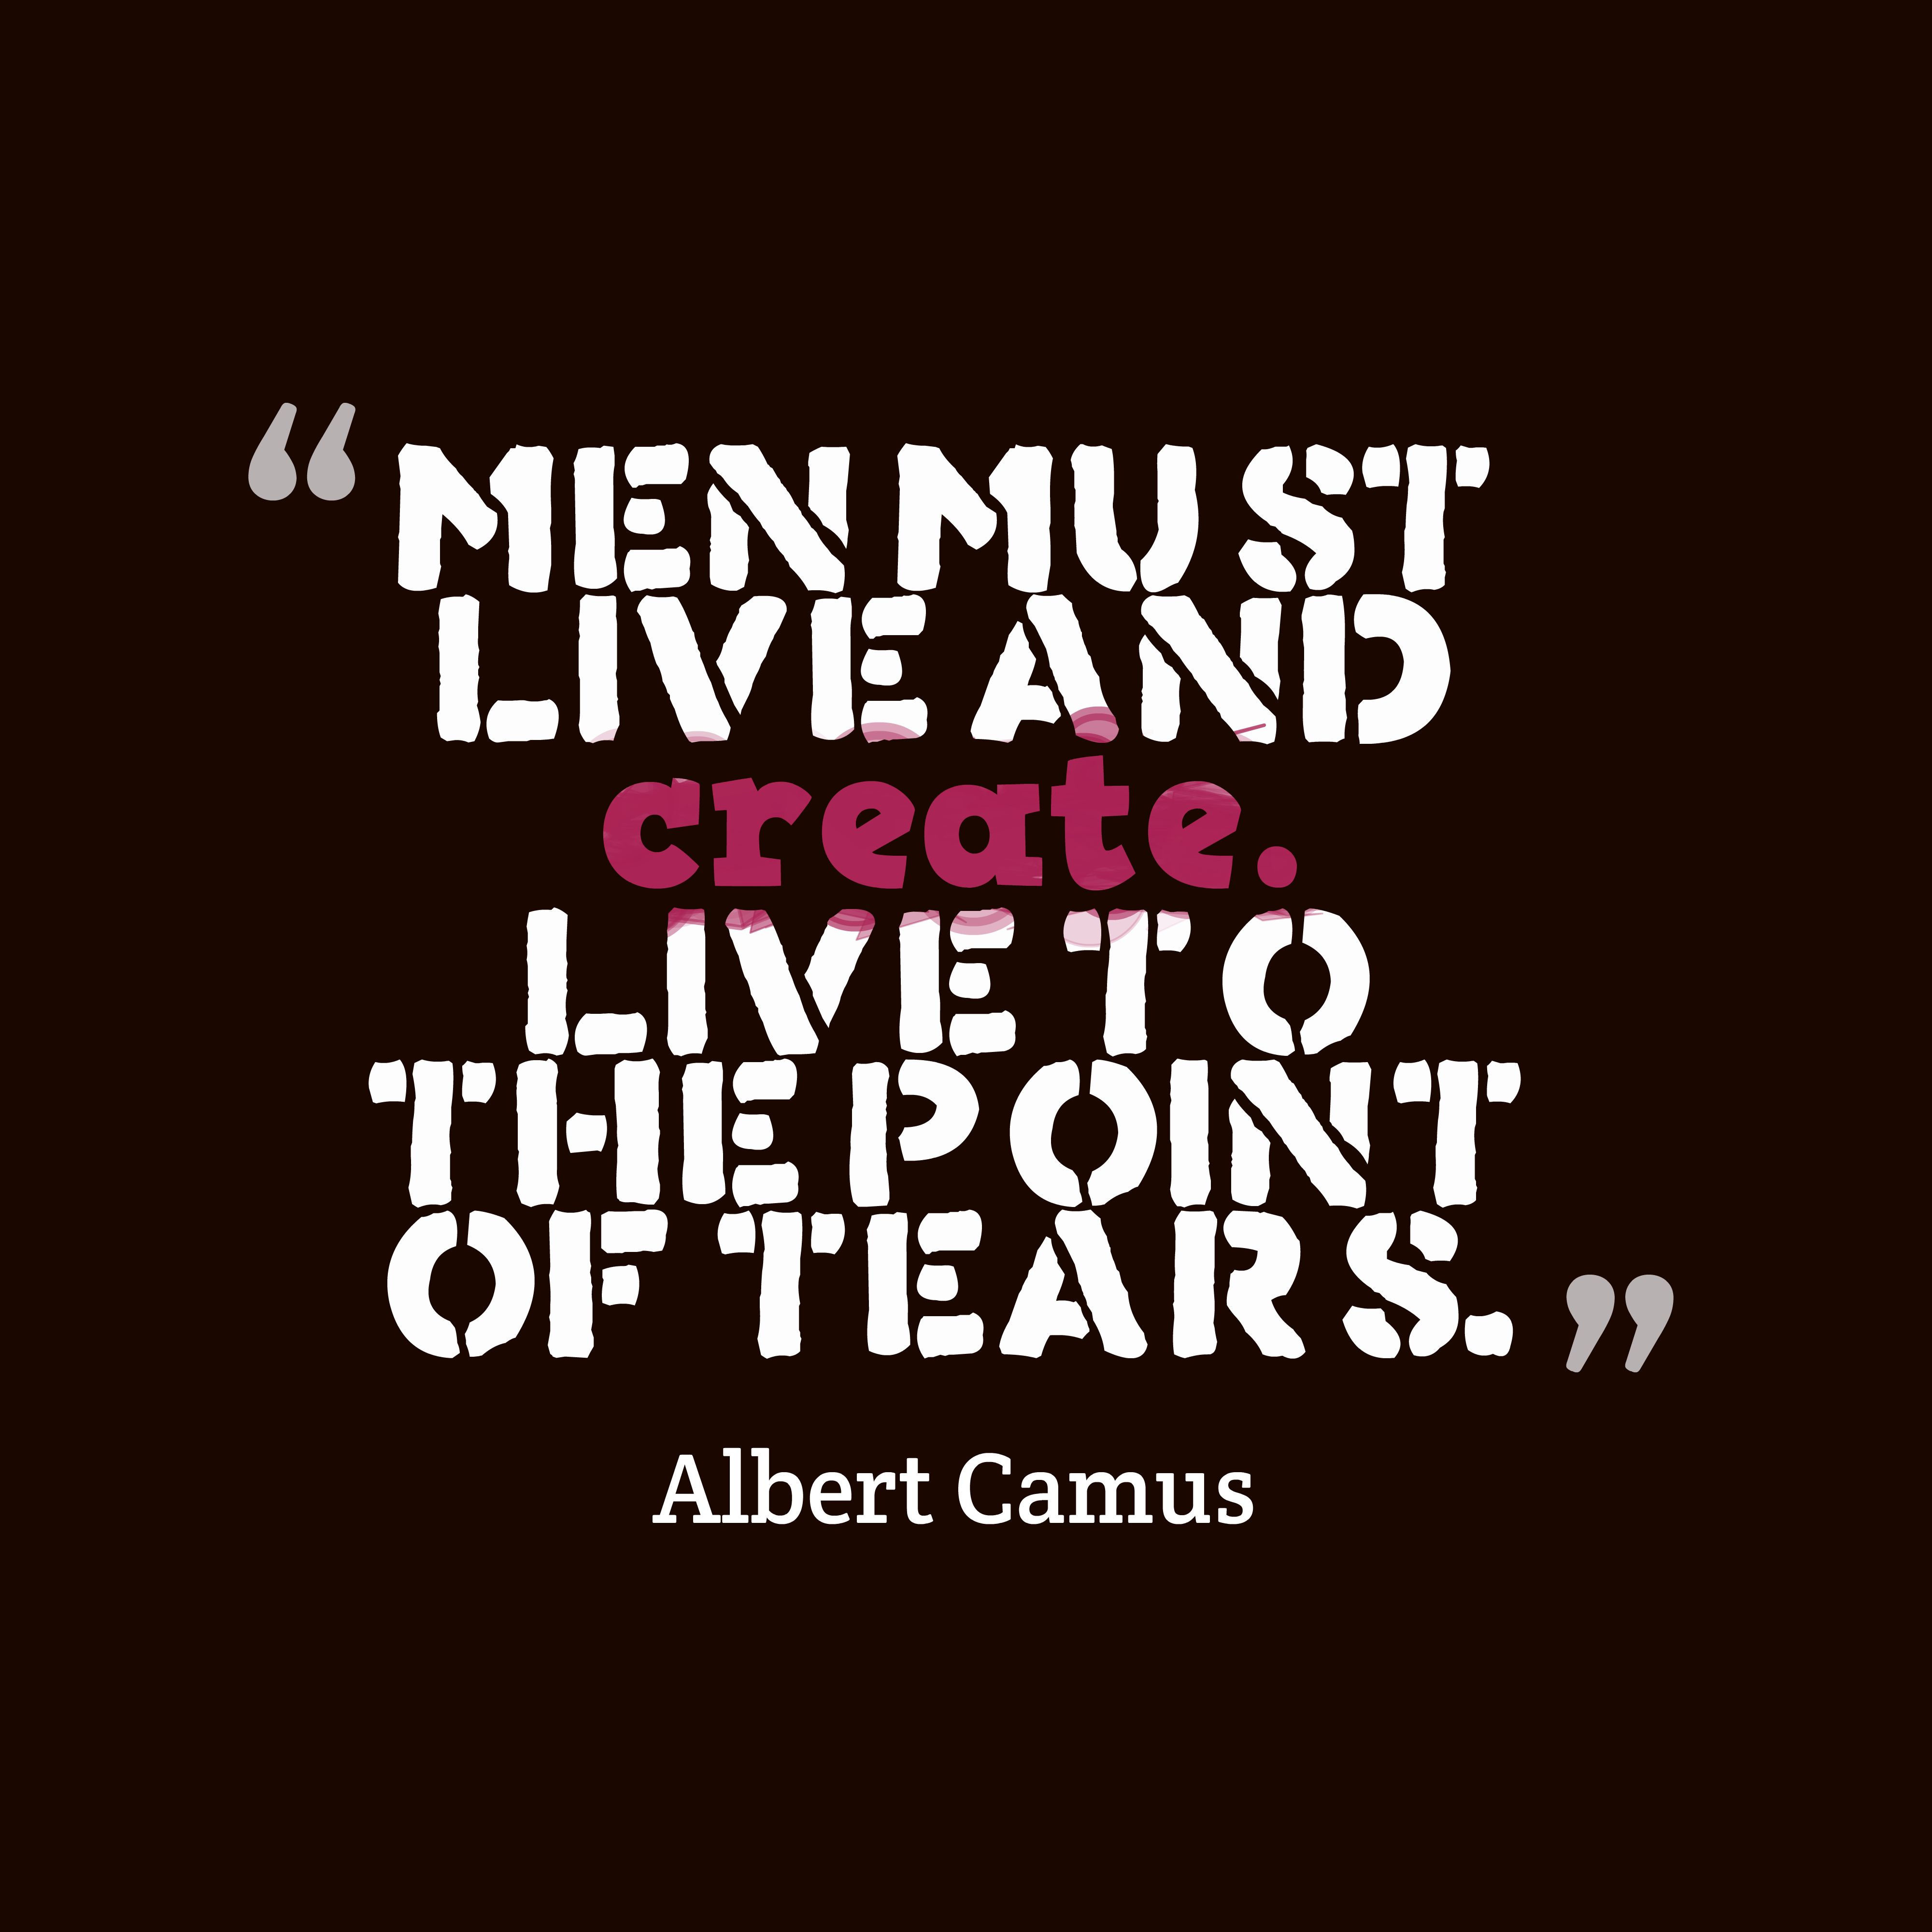 Albert Camus Wquote About Men